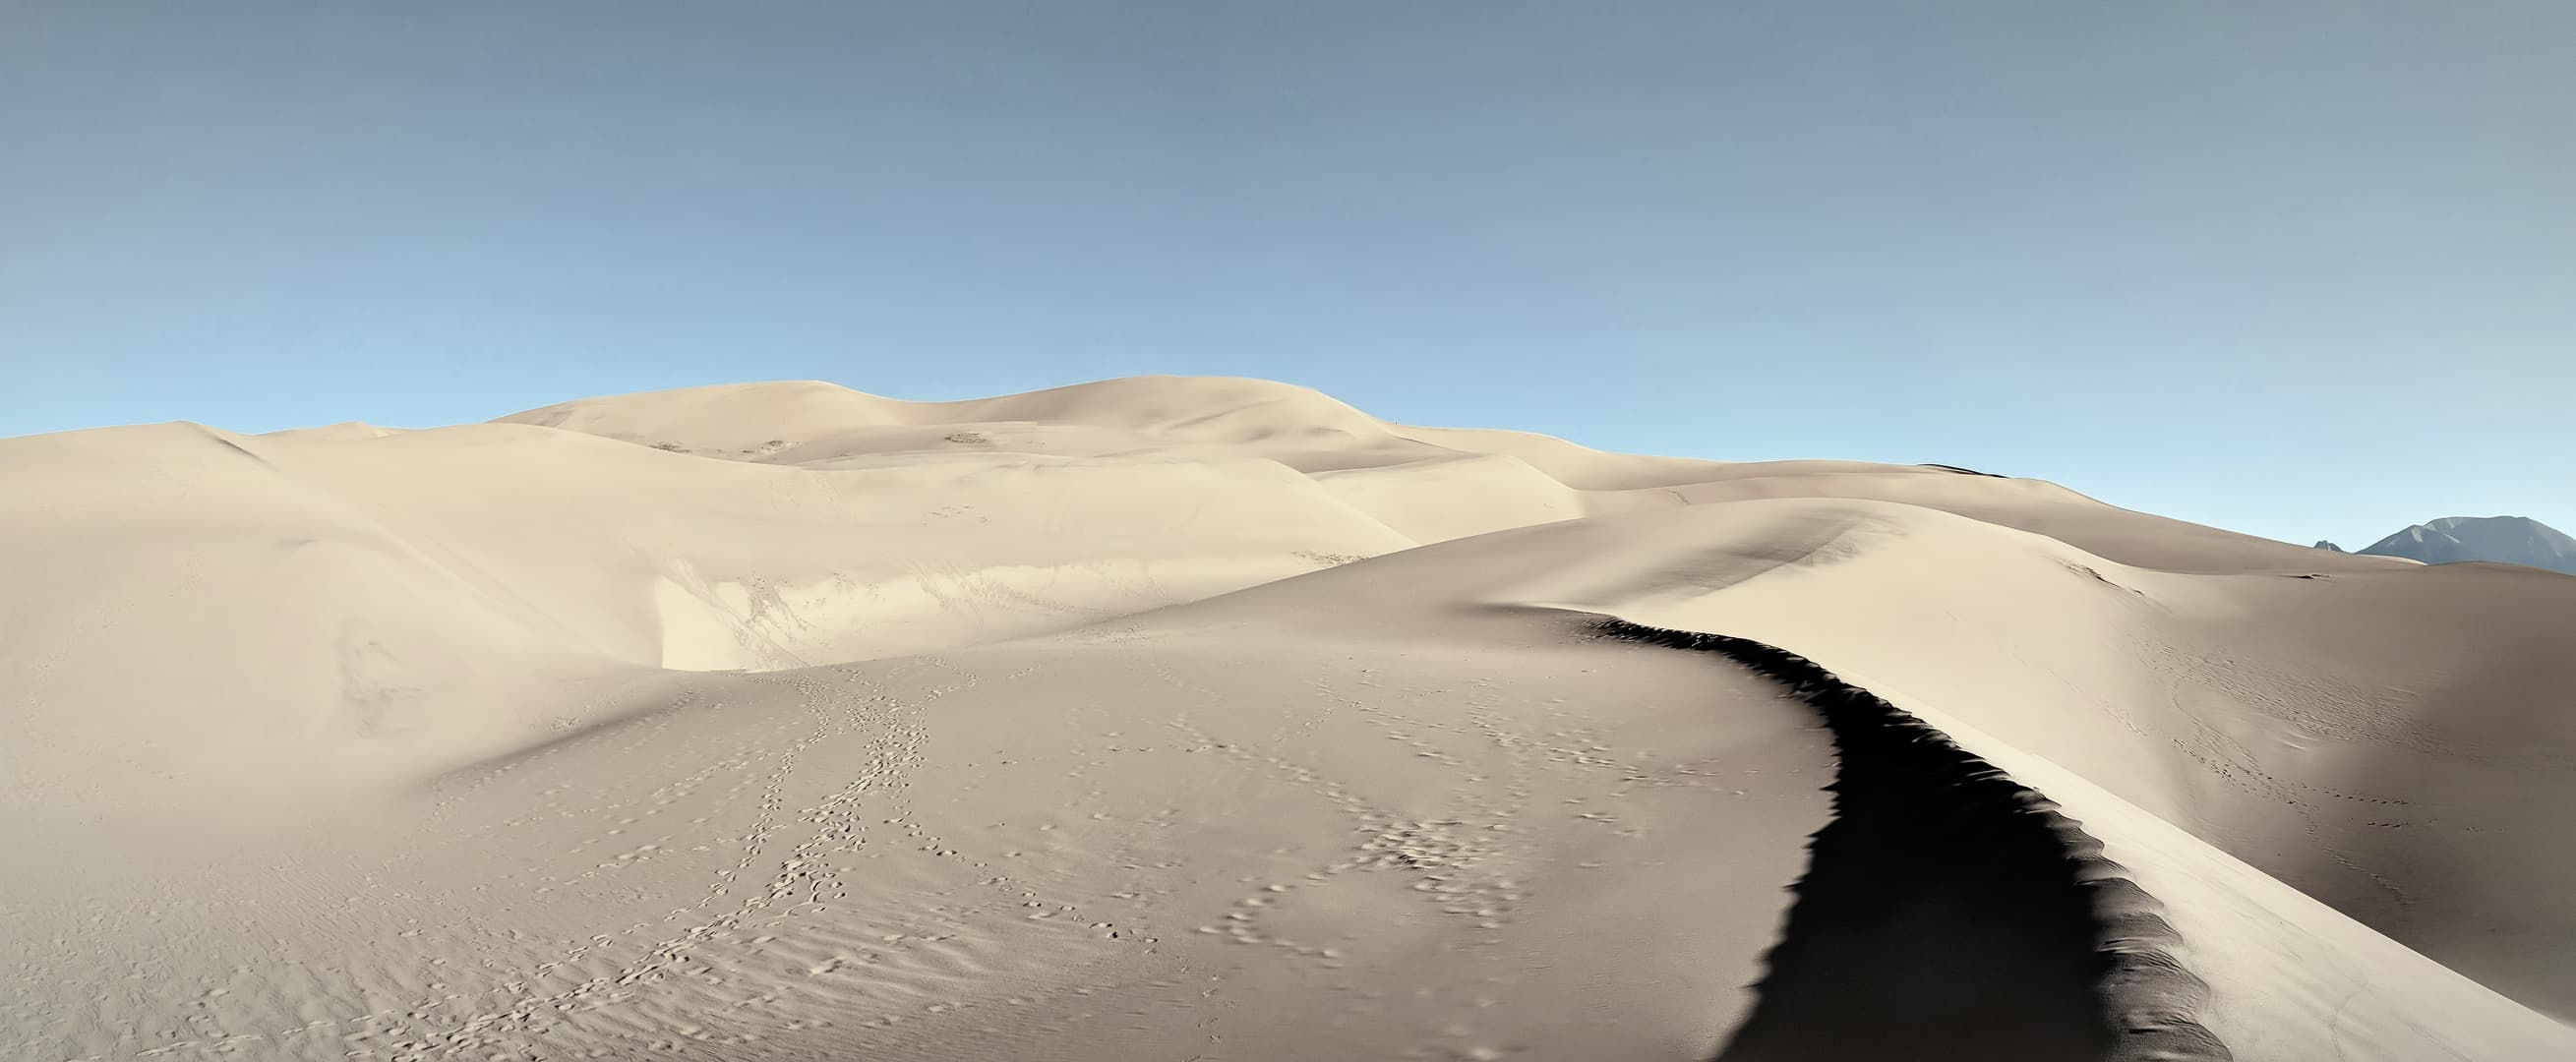 A panorama over the dunes at Great Sand Dunes National Park. Nothing but undulating sand and clear blue skies can be seen.